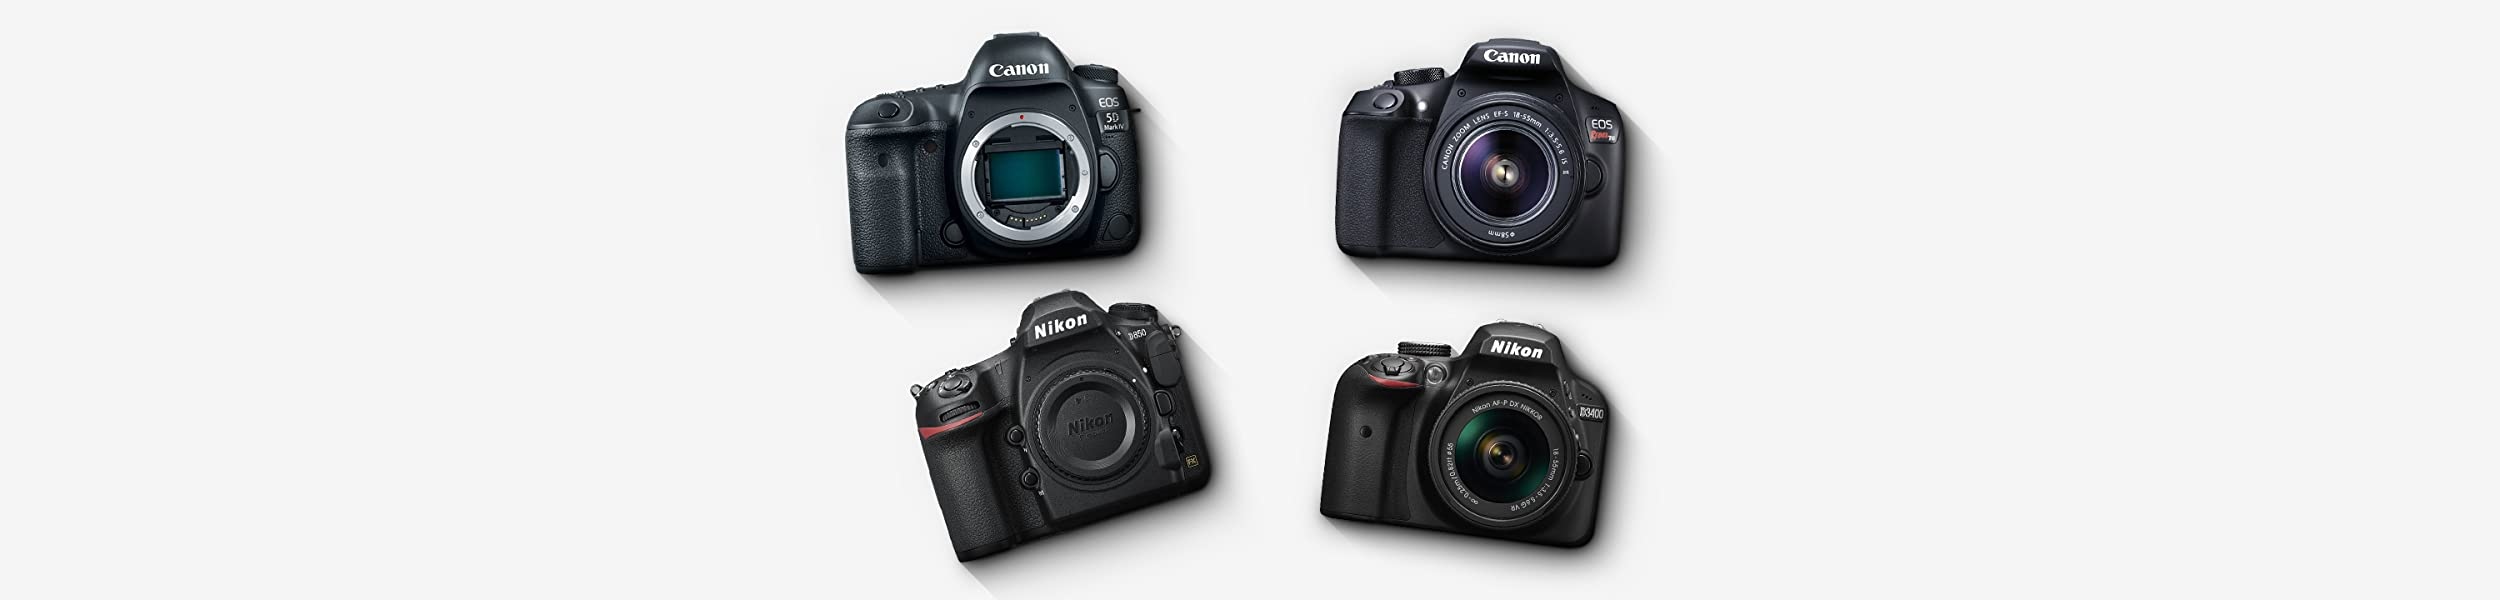 top rated digital S L R cameras